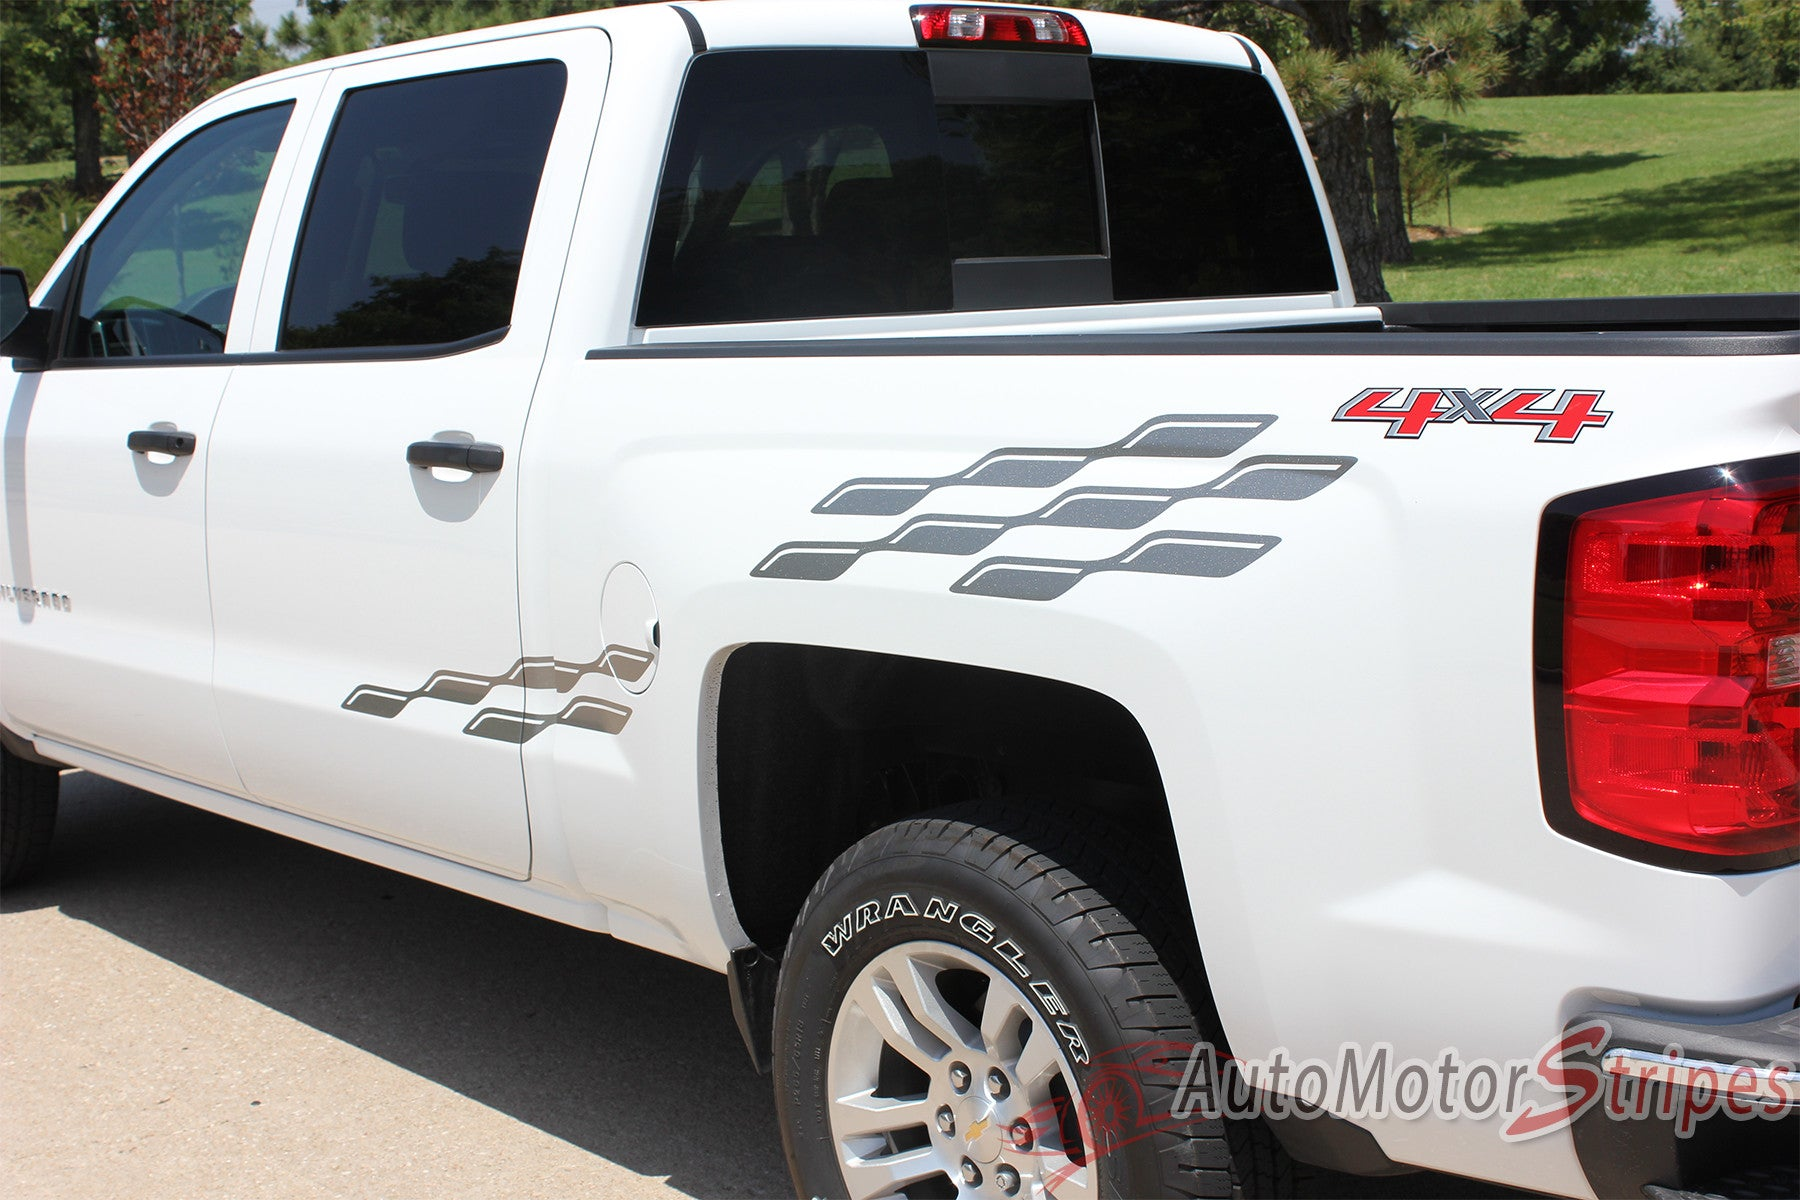 2000 2018 Chevy Silverado Decals Champ Truck Bed Side Vinyl Graphic 2015 Paint Colors 2007 2017 Flag Graphics Close Up View